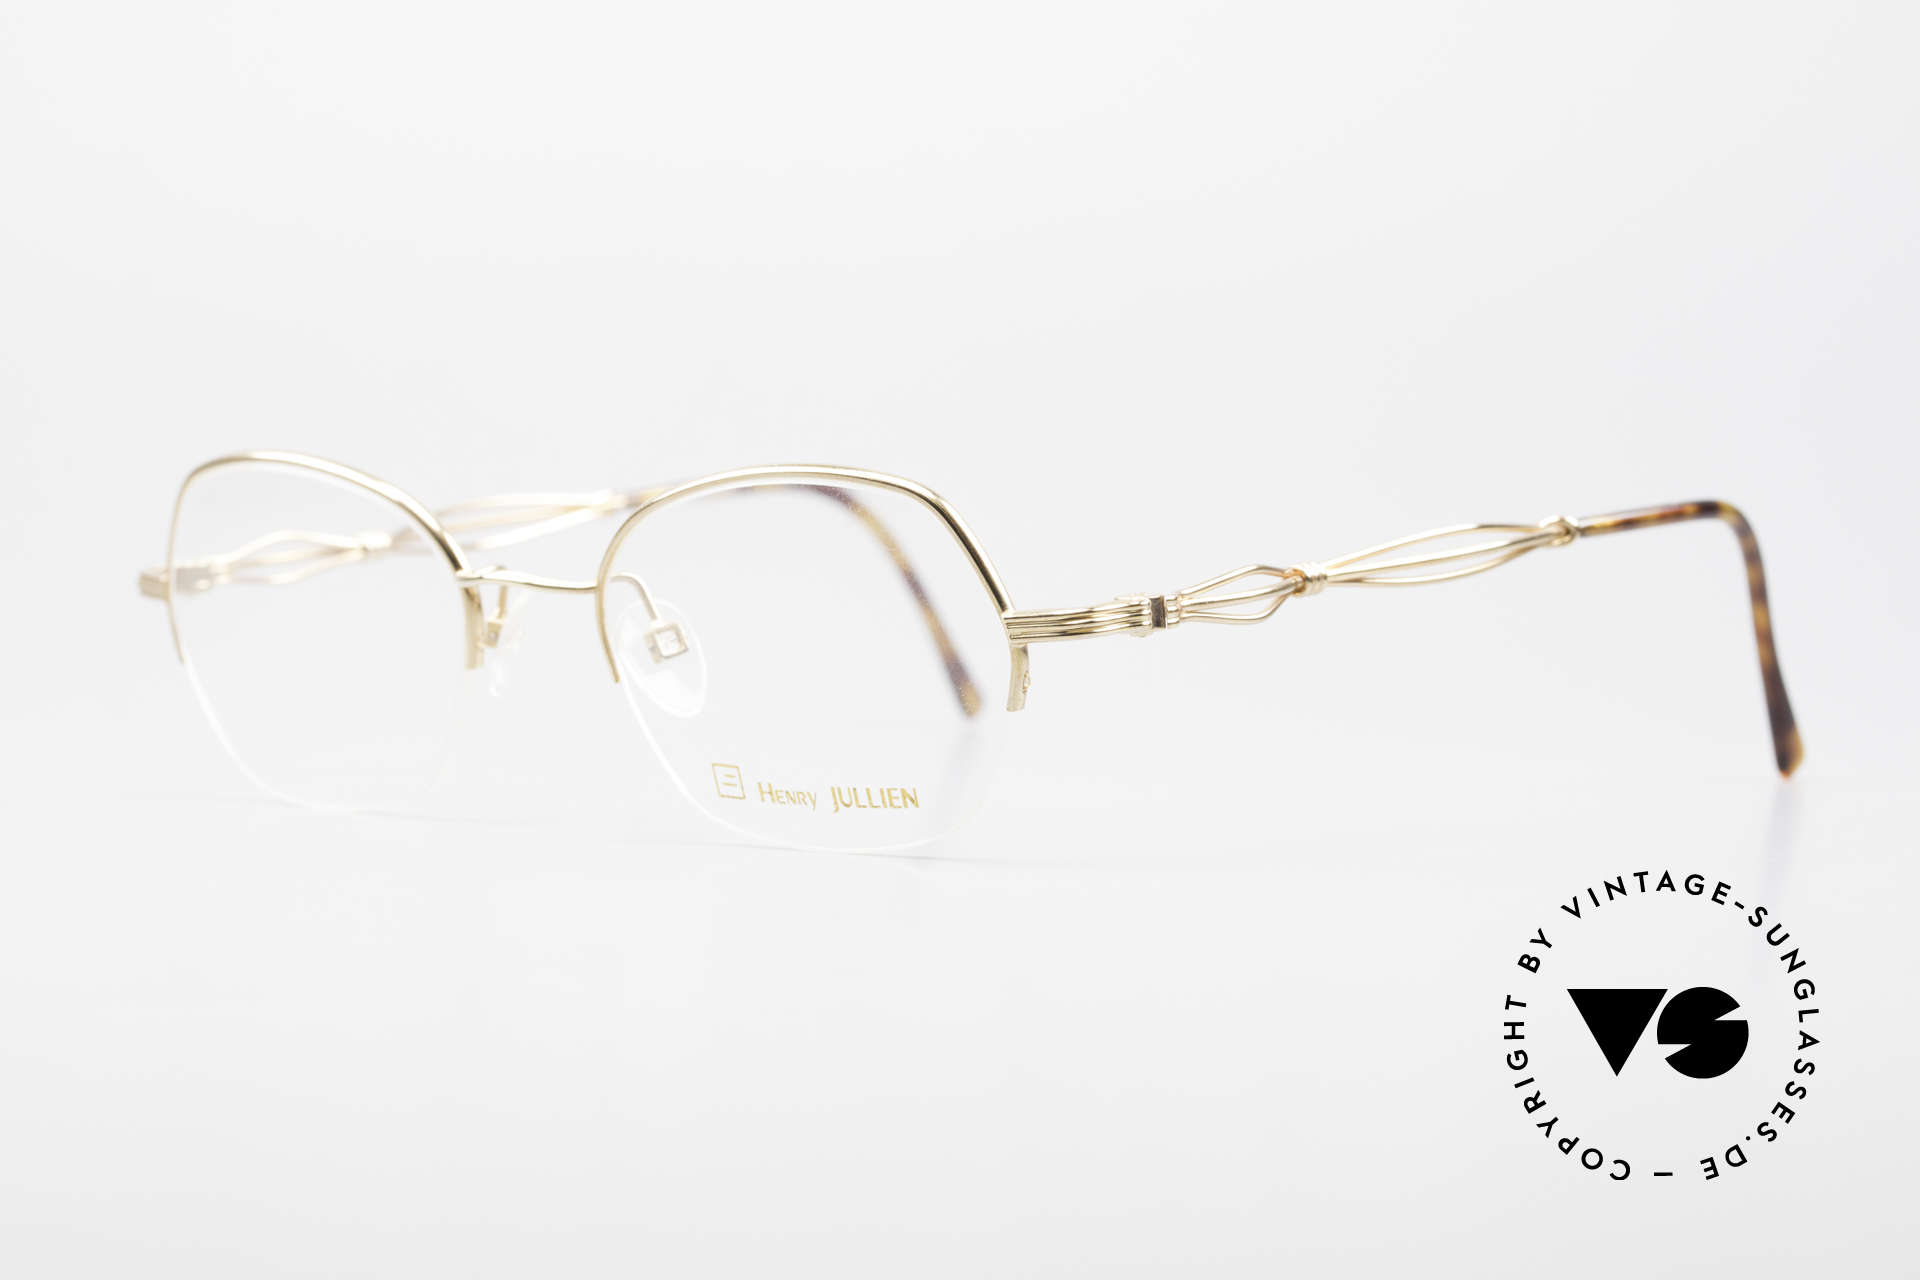 Henry Jullien Ellipse 12 Gold Doublé Ladies Glasses, incredible premium quality thanks to costly handicraft, Made for Women